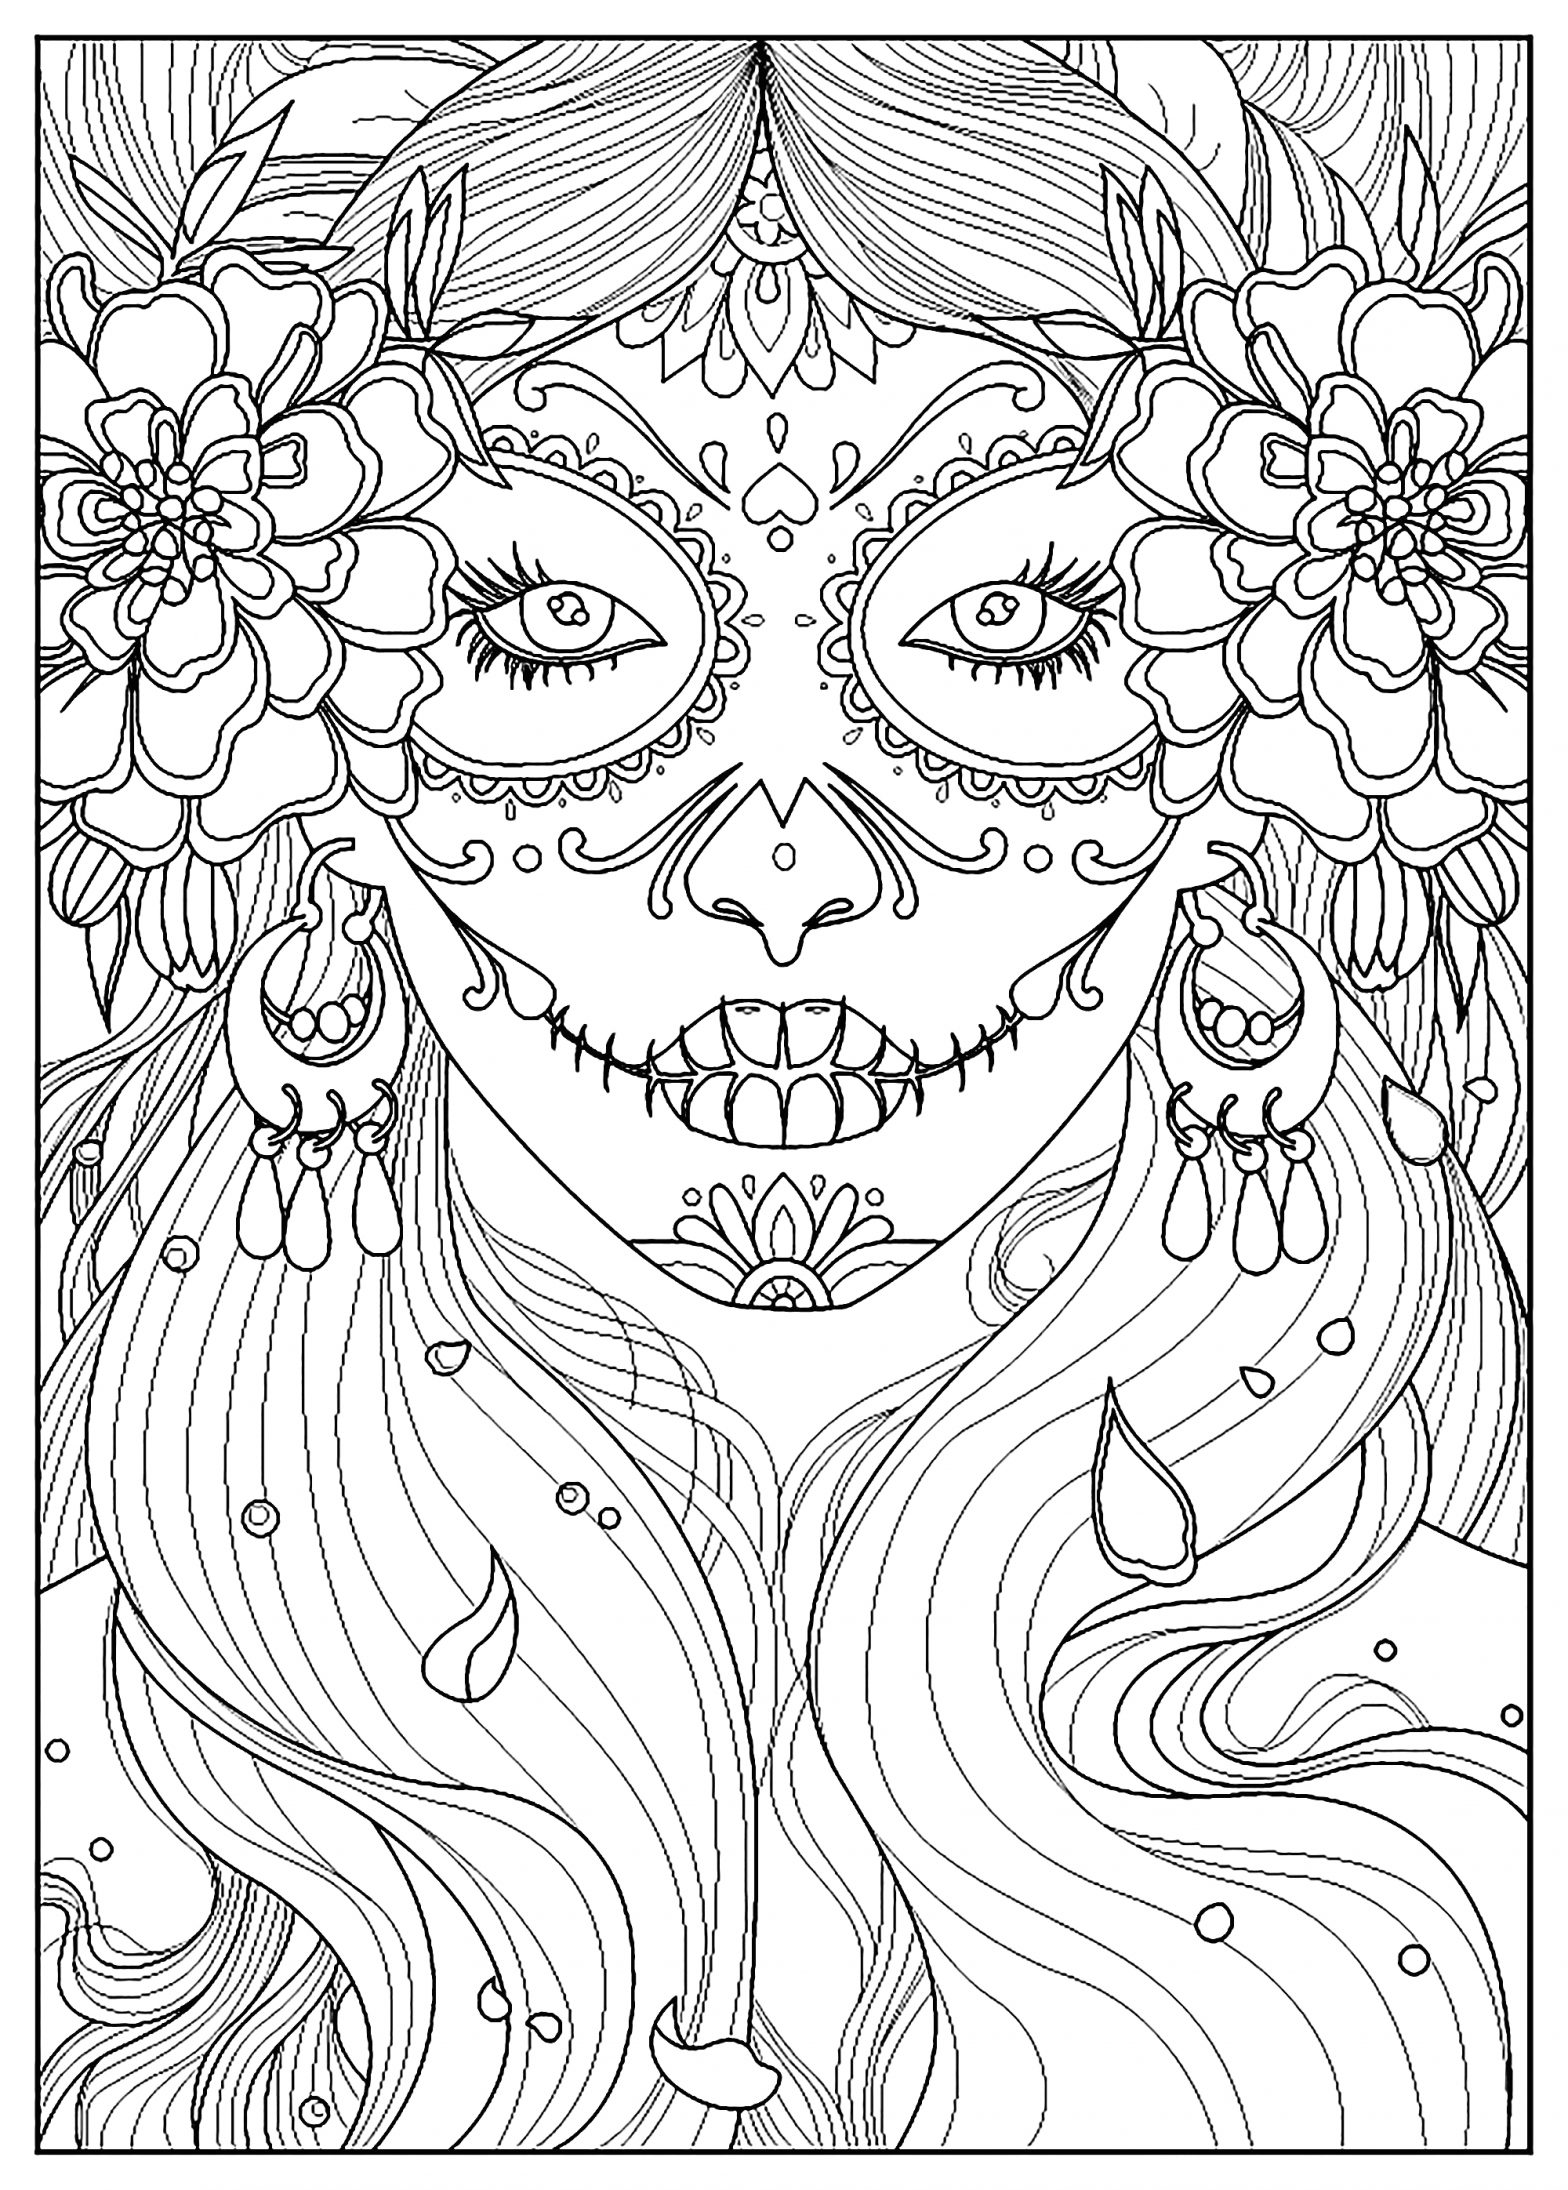 Day Of the Dead Coloring Pages for Adults Day Of the Dead El Da De Los Muertos Adult Coloring Pages